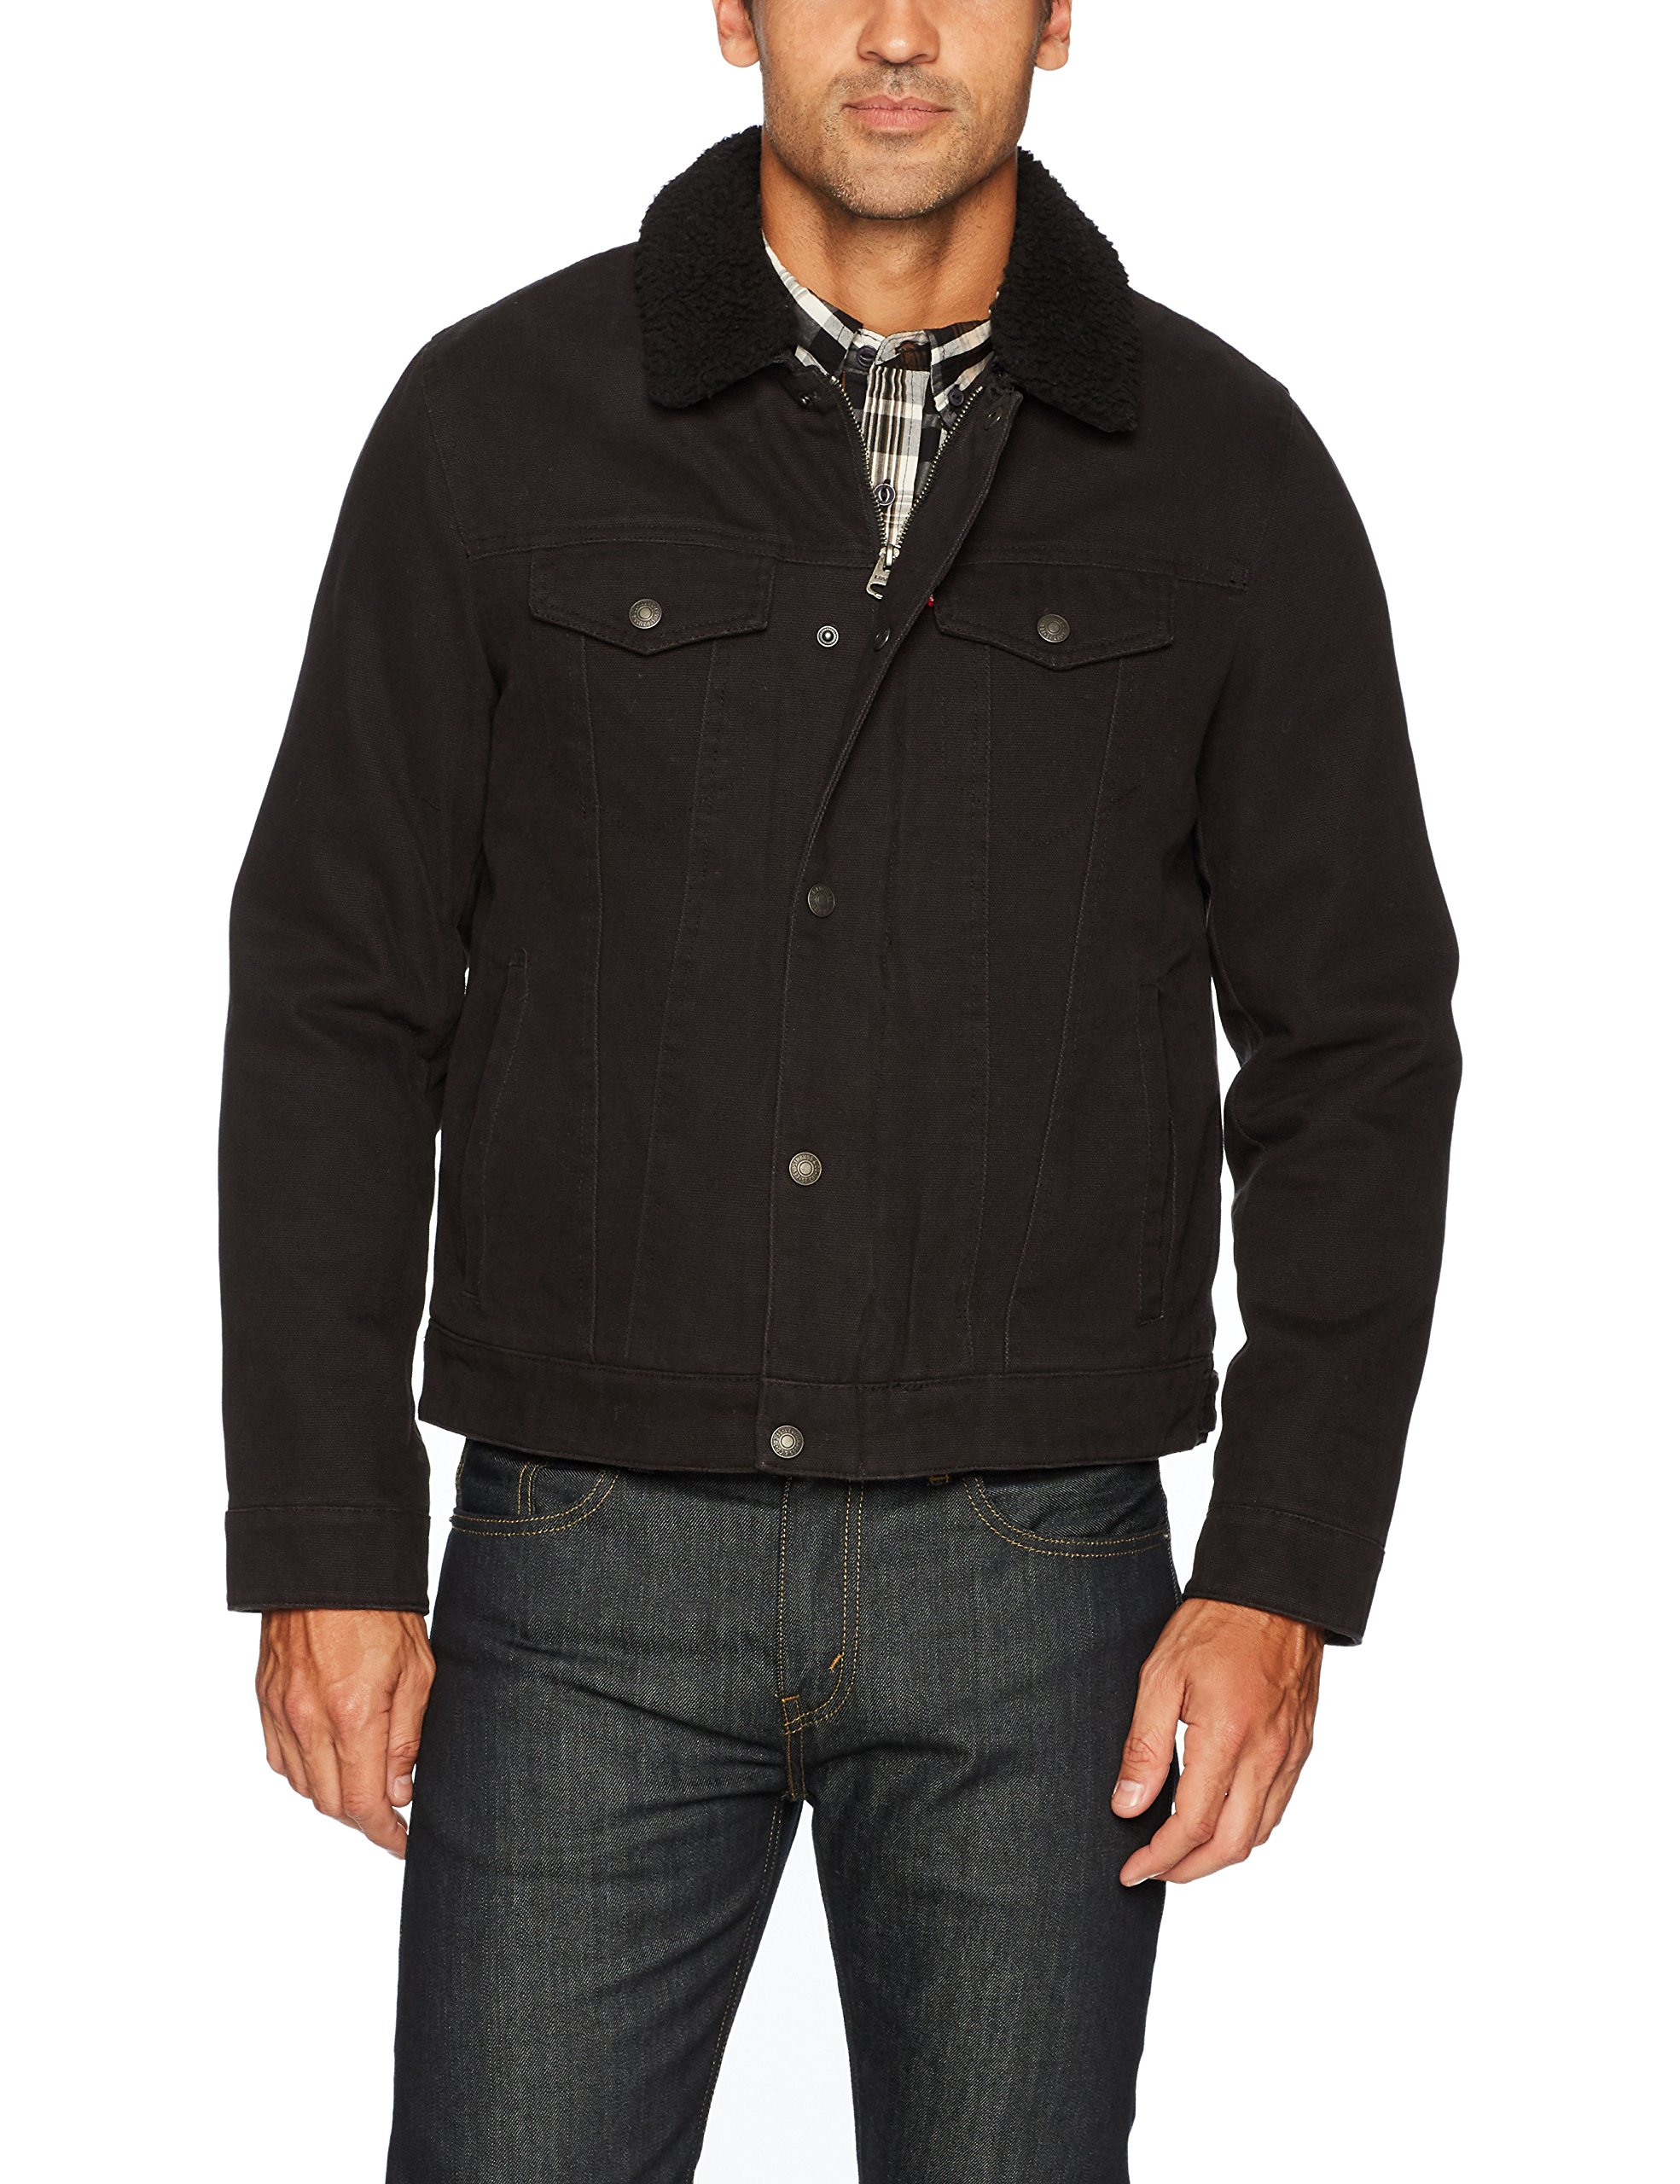 Levi's Men's Cotton Canvas Tucker Jacket with Sherpa Collar, Black, Large by Levi's